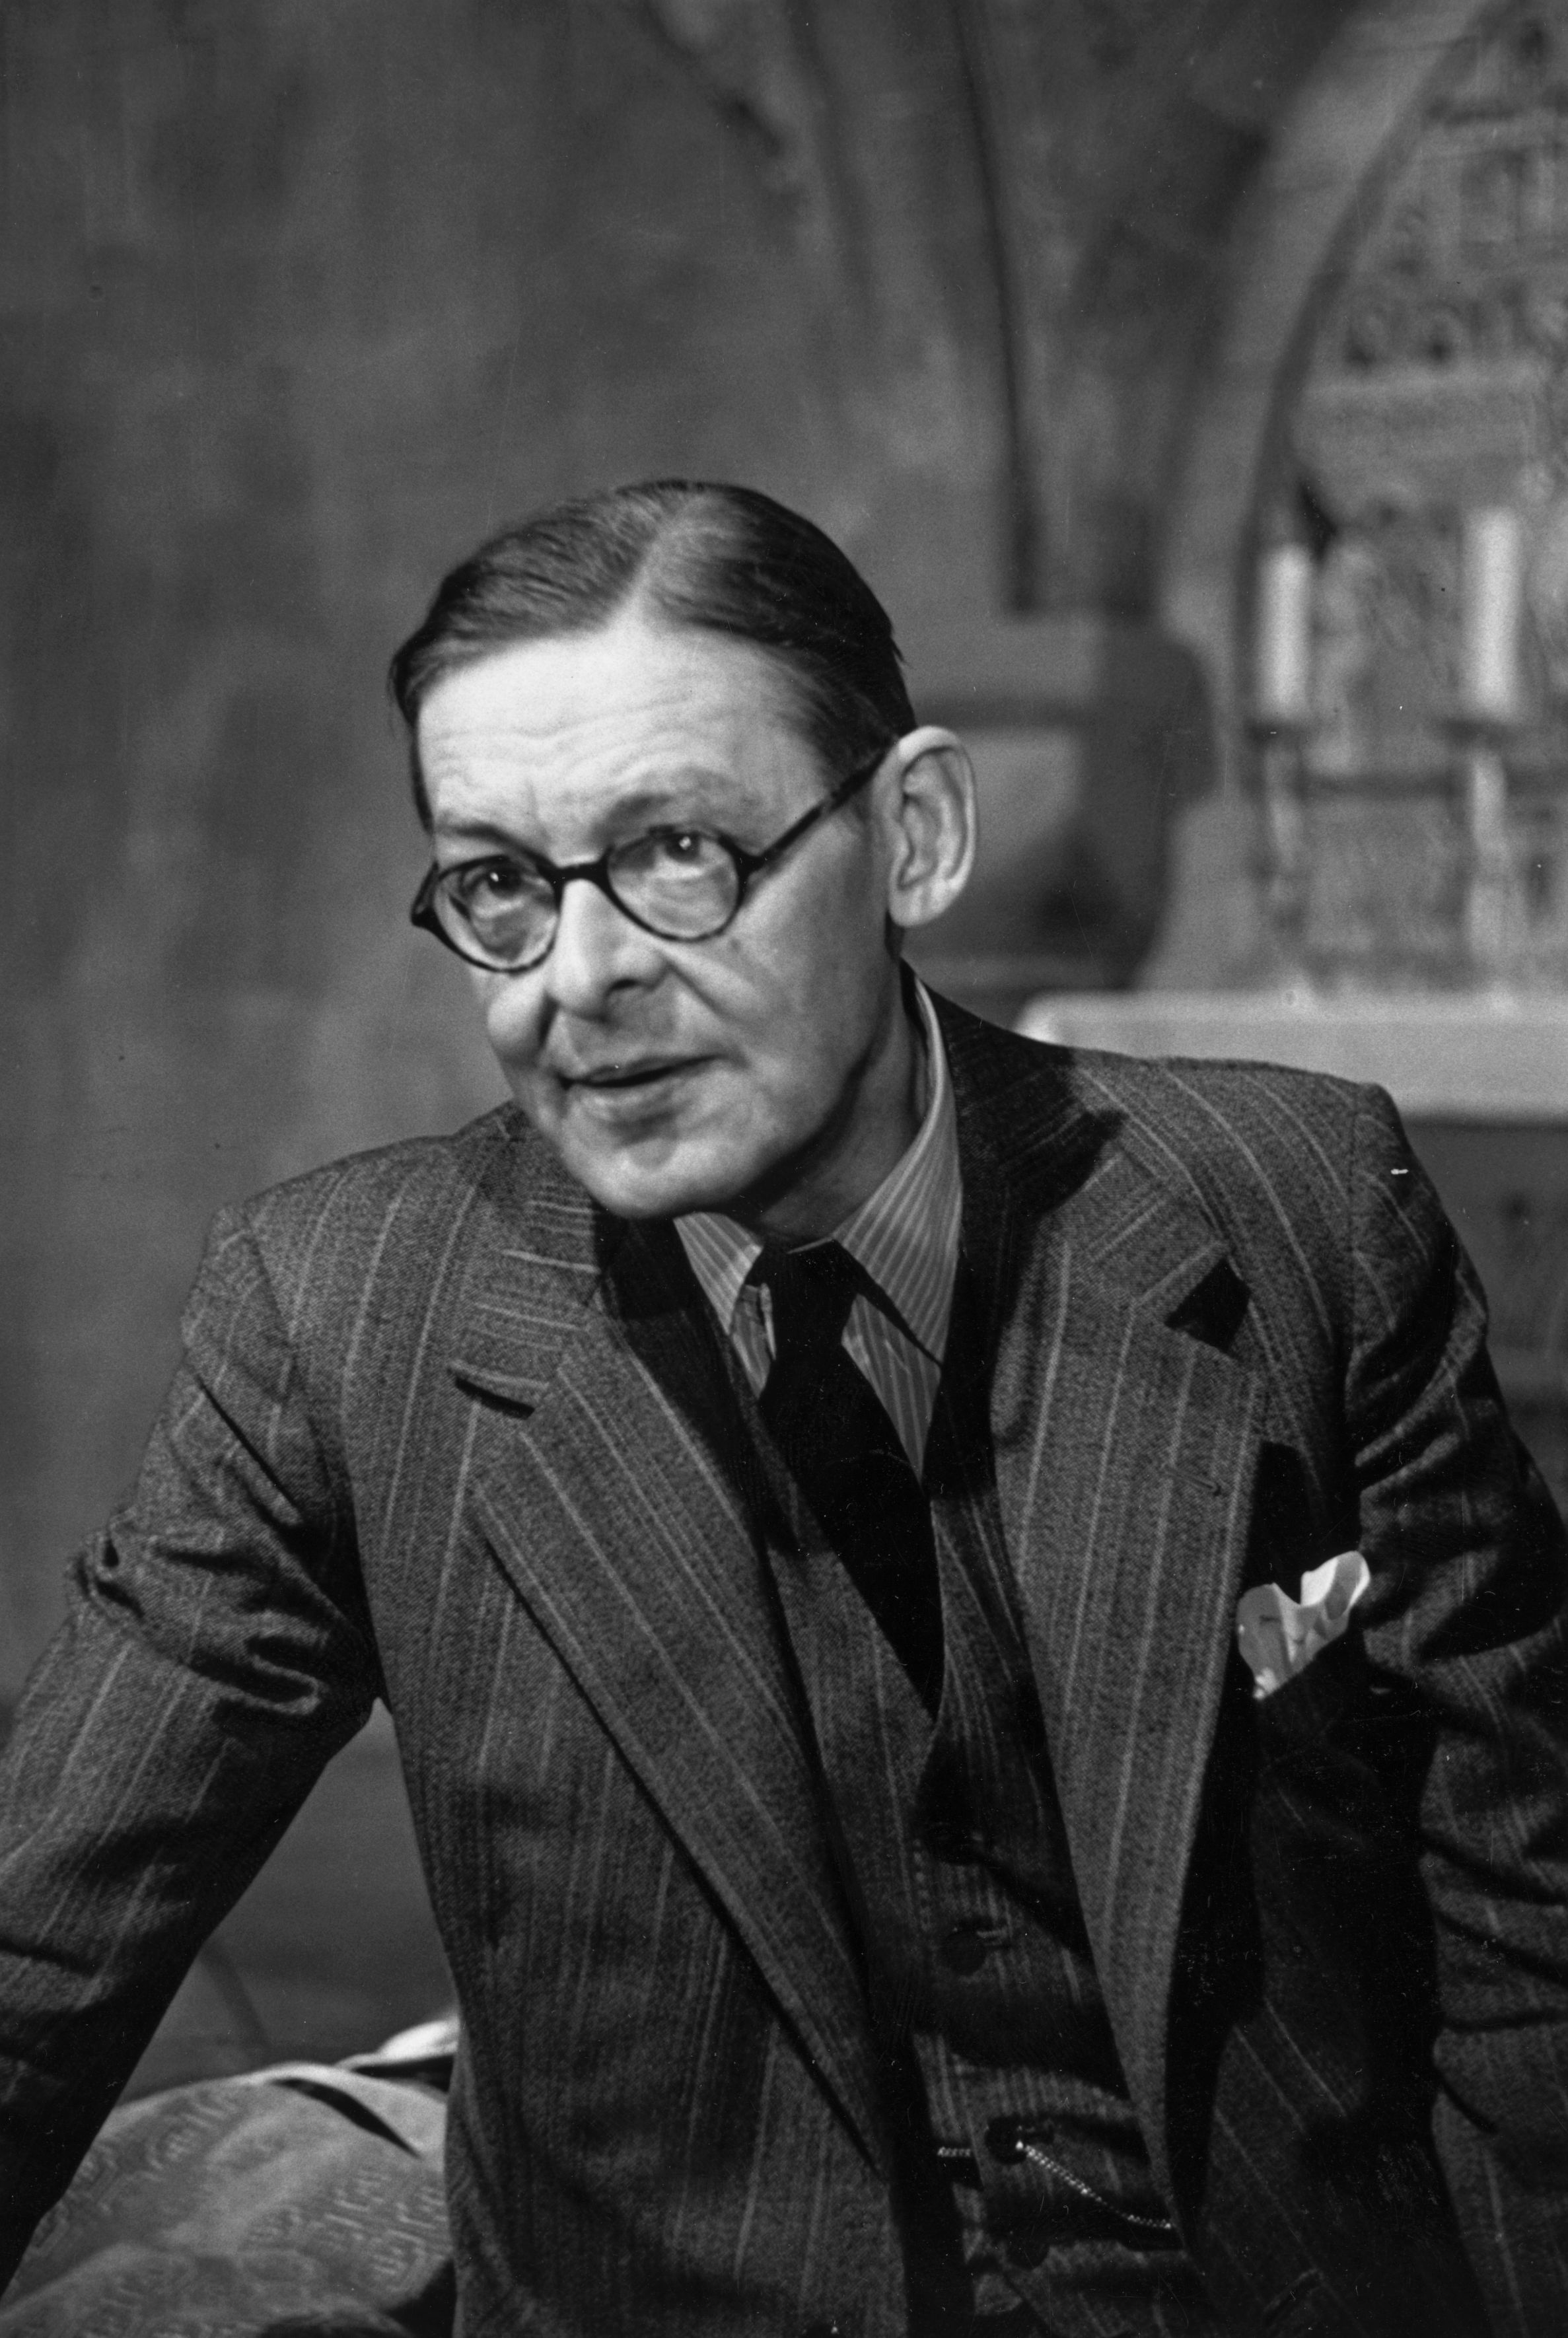 a biography of thomas stearns eliot a writer Poet, critic, and editor, was born thomas stearns eliot the criterion's editorial voice placed eliot at the center of london writing eliot t s eliot.